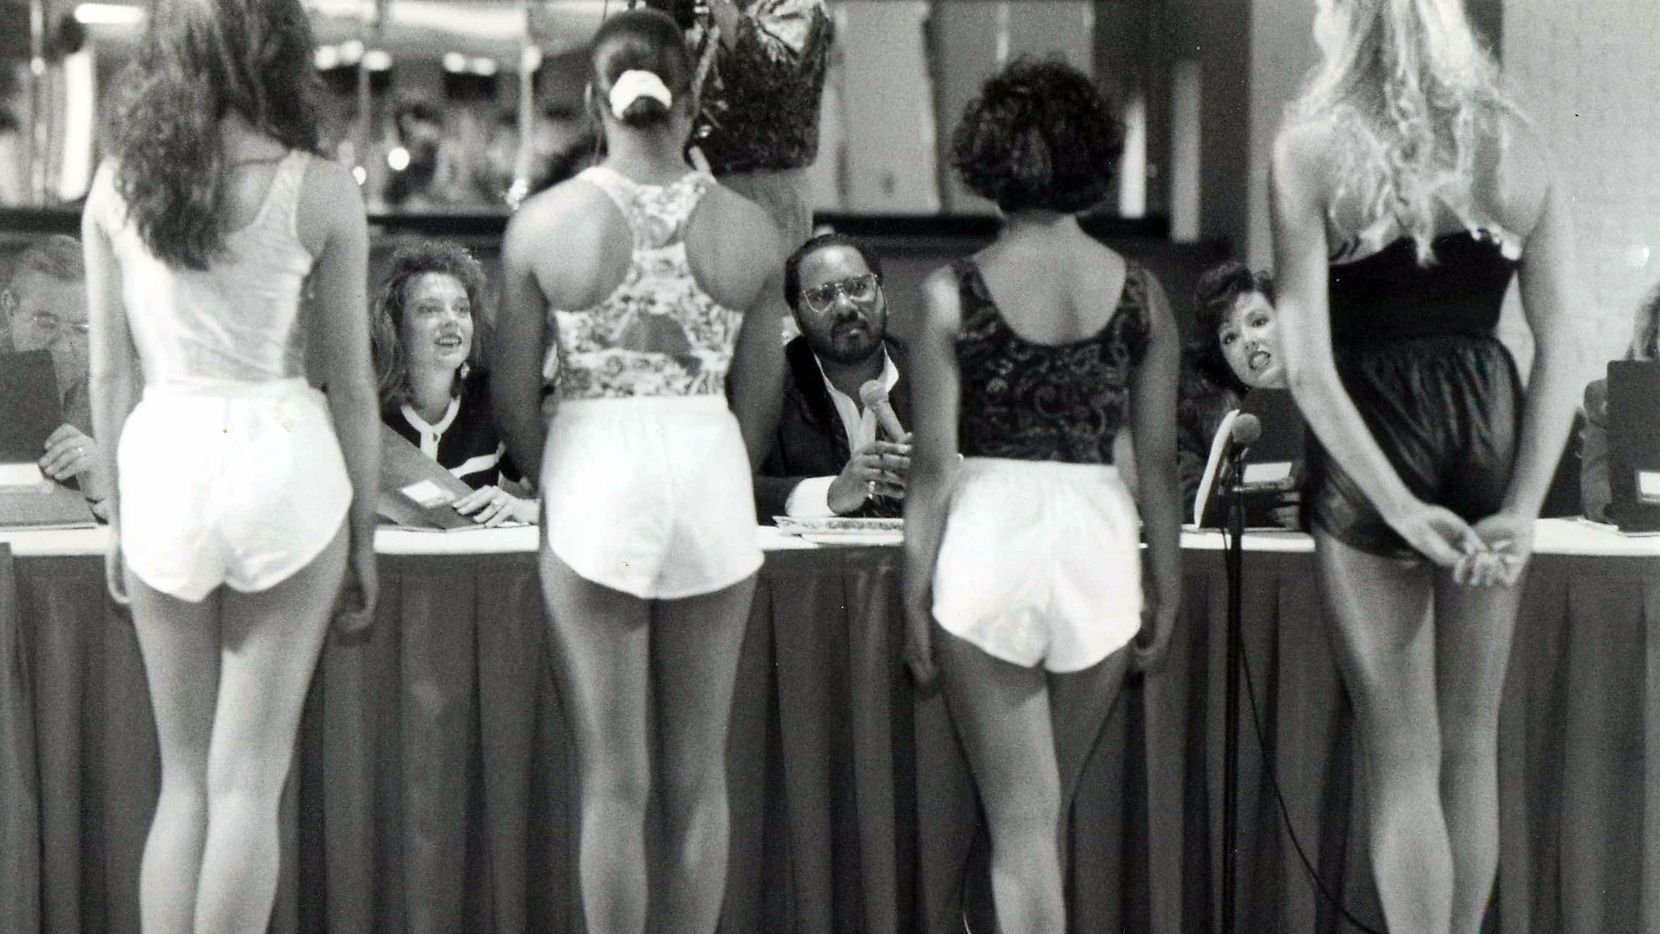 Former KVIL disc jockey Scott West, center, judges Dallas Cowboy Cheerleader tryouts in 1993 with, from left, Buddy Sharp, hairstylist for the Dallas Cowboys Cheerleaders; Charlotte Anderson, Marketing Director for the Cowboys; West; and Kelli McGonagill, director of the Cheerleaders.